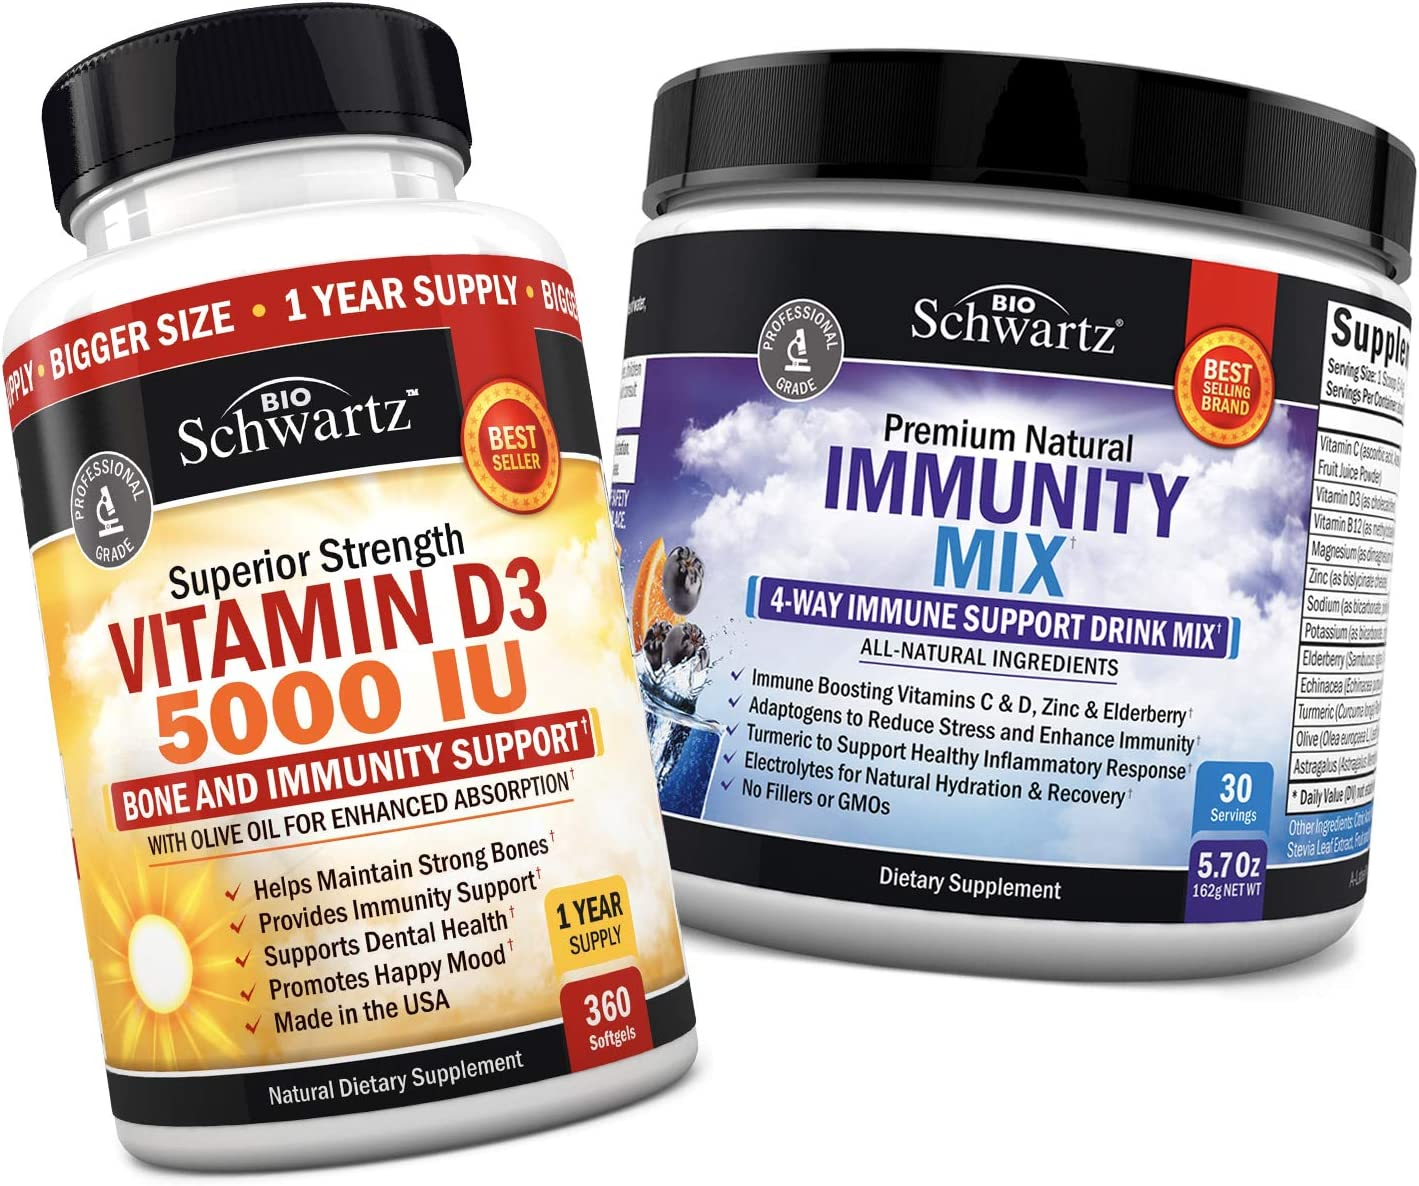 Vitamin D3 5,000 IU with Olive Oil for Maximum Absorption + Immunity Drink Mix with Vitamin C 1000 mg, Elderberry & Zinc - Berry Flavored Powder - for Healthy Immune, Mood, & Bone Support